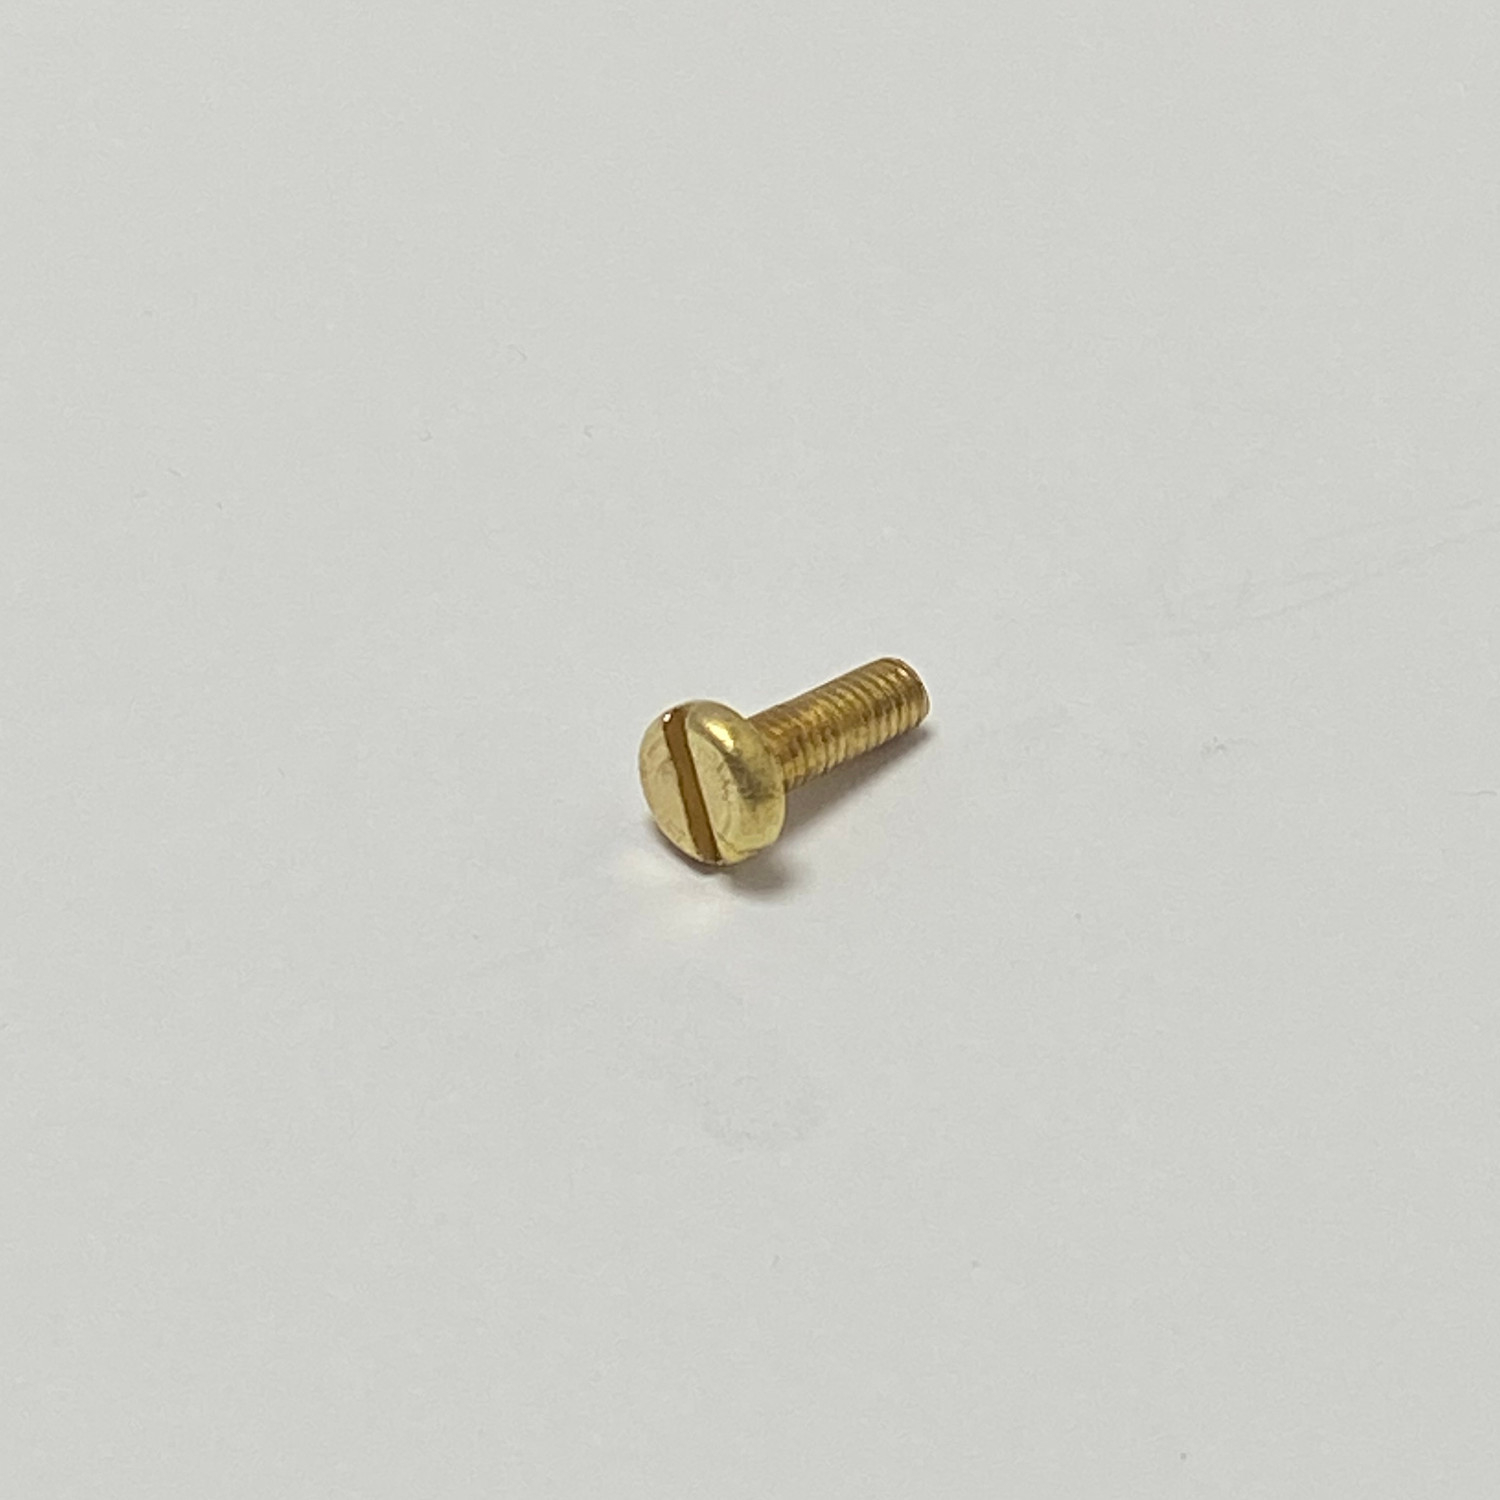 M6 X 16 BRASS SLOTTED CHEESE SCREWS